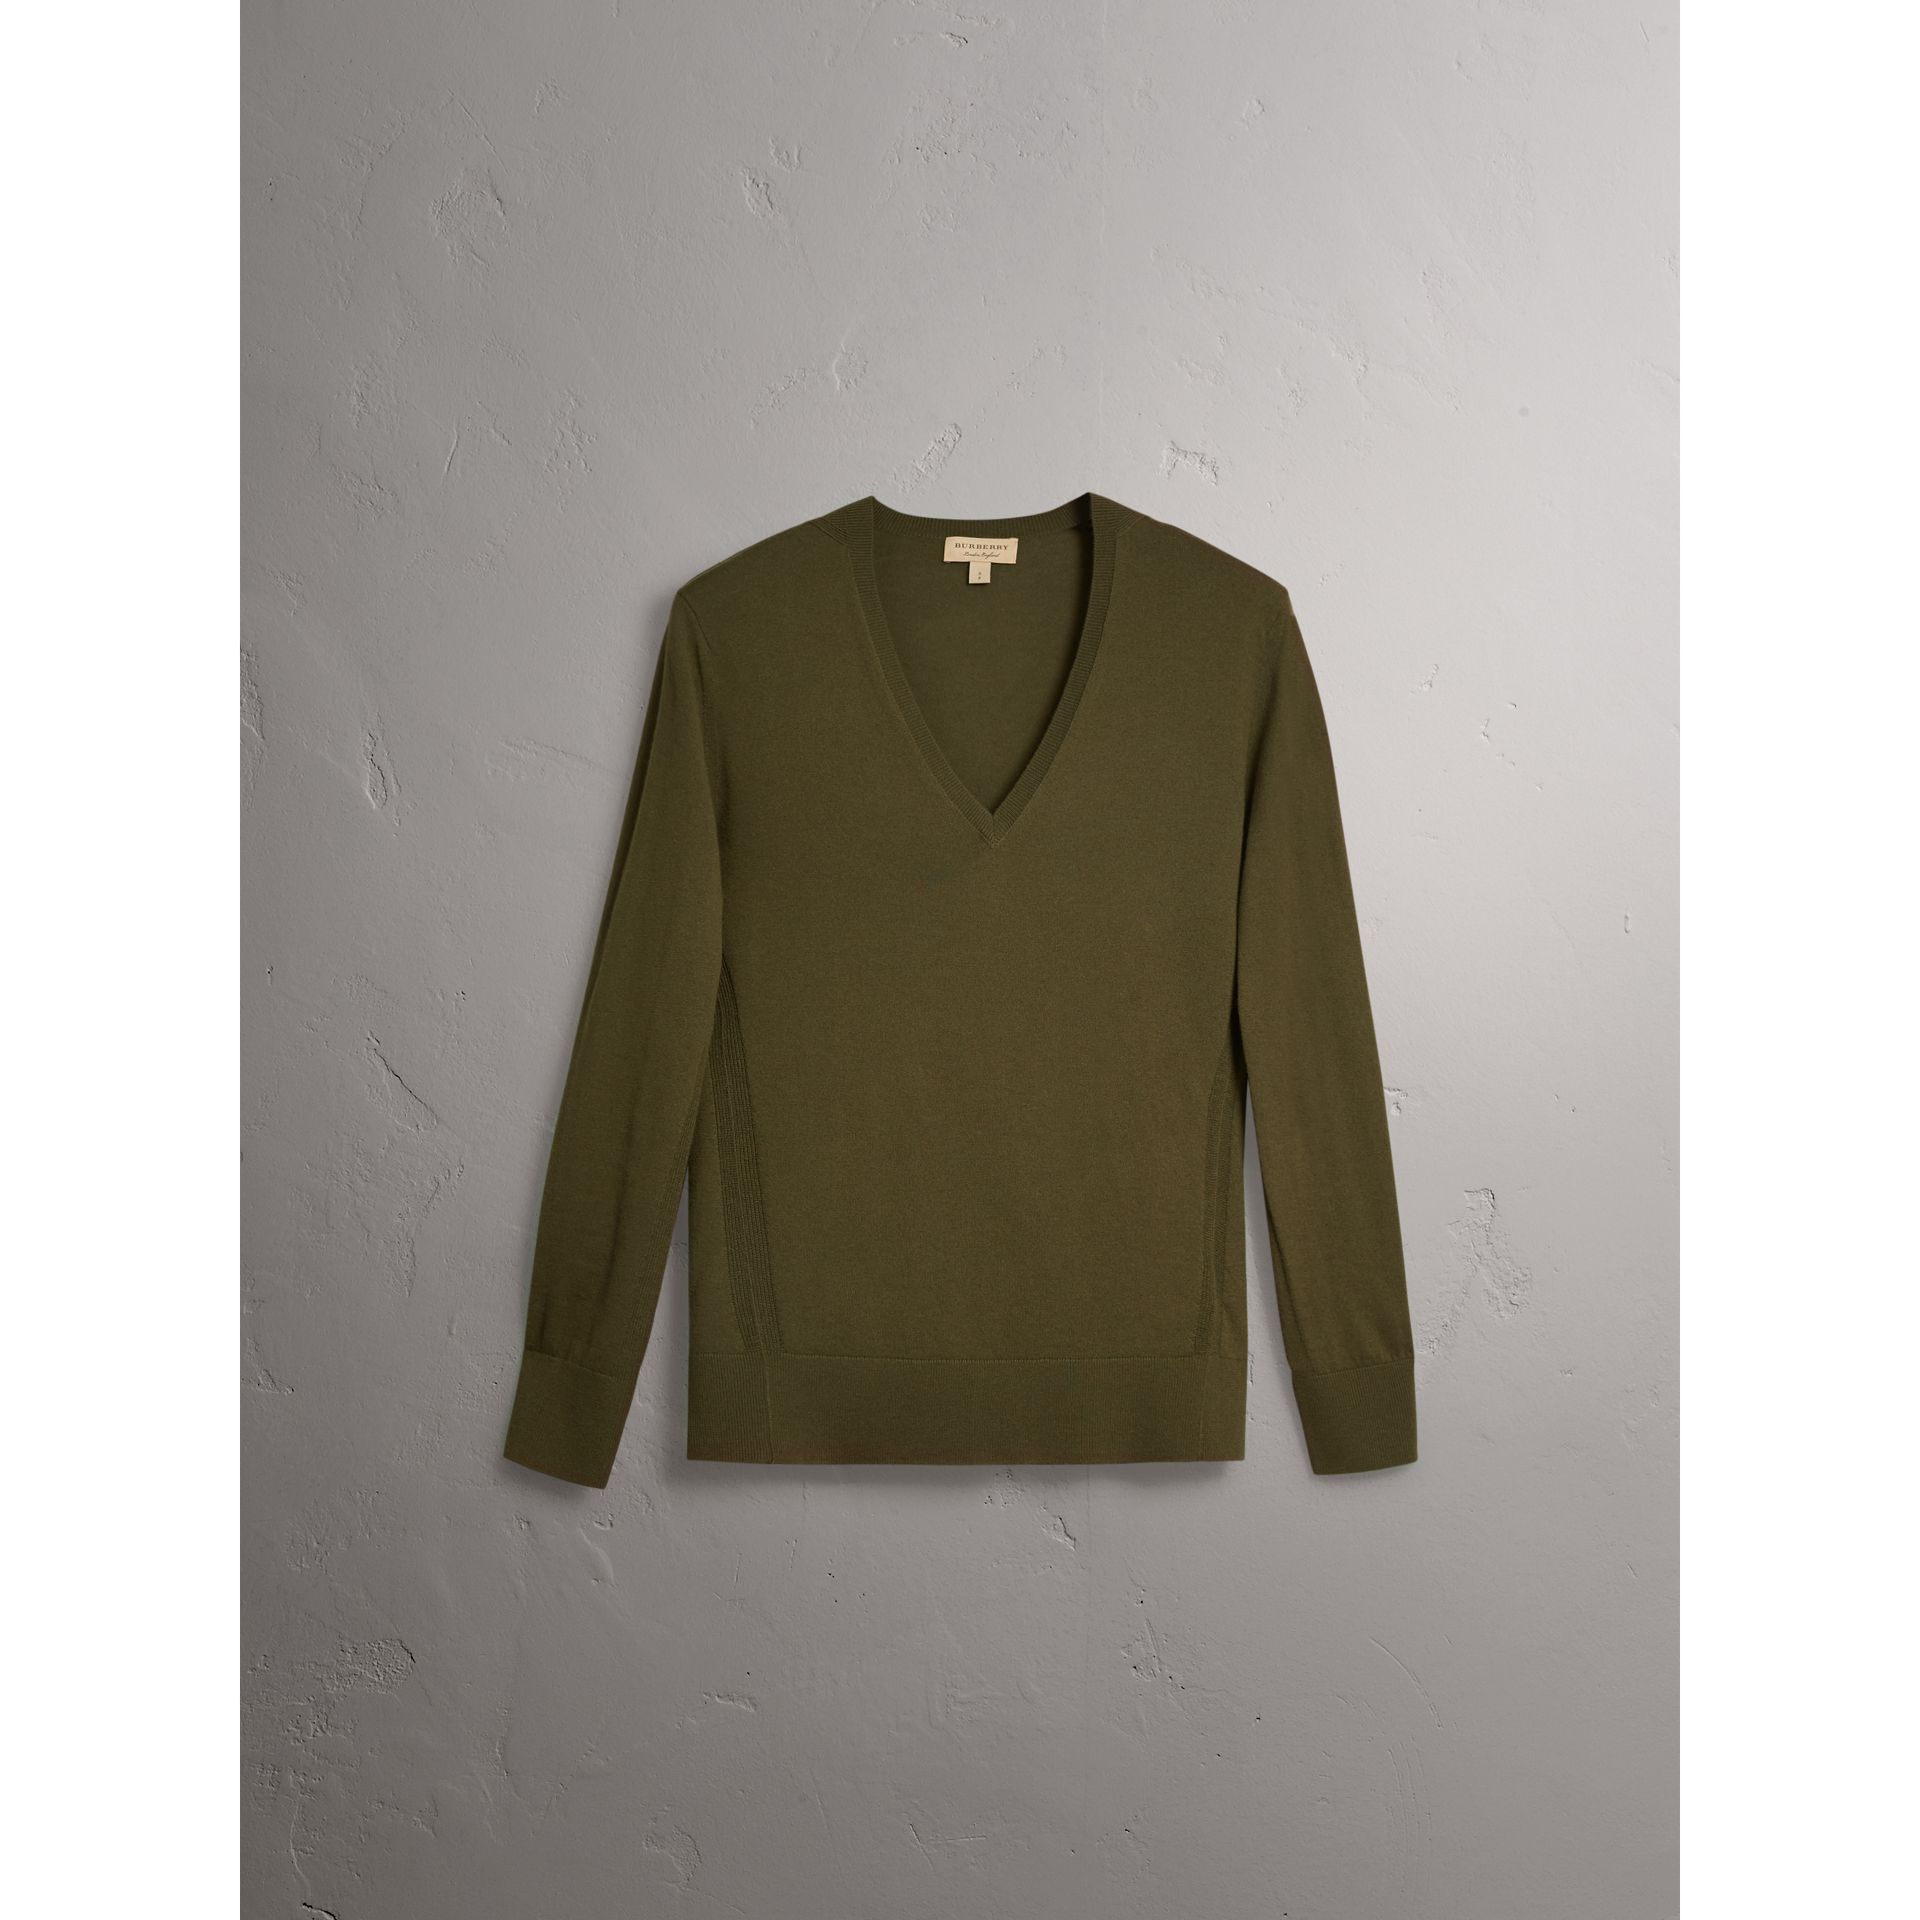 Check Detail Cashmere V-neck Sweater in Khaki Green - Women | Burberry - gallery image 3